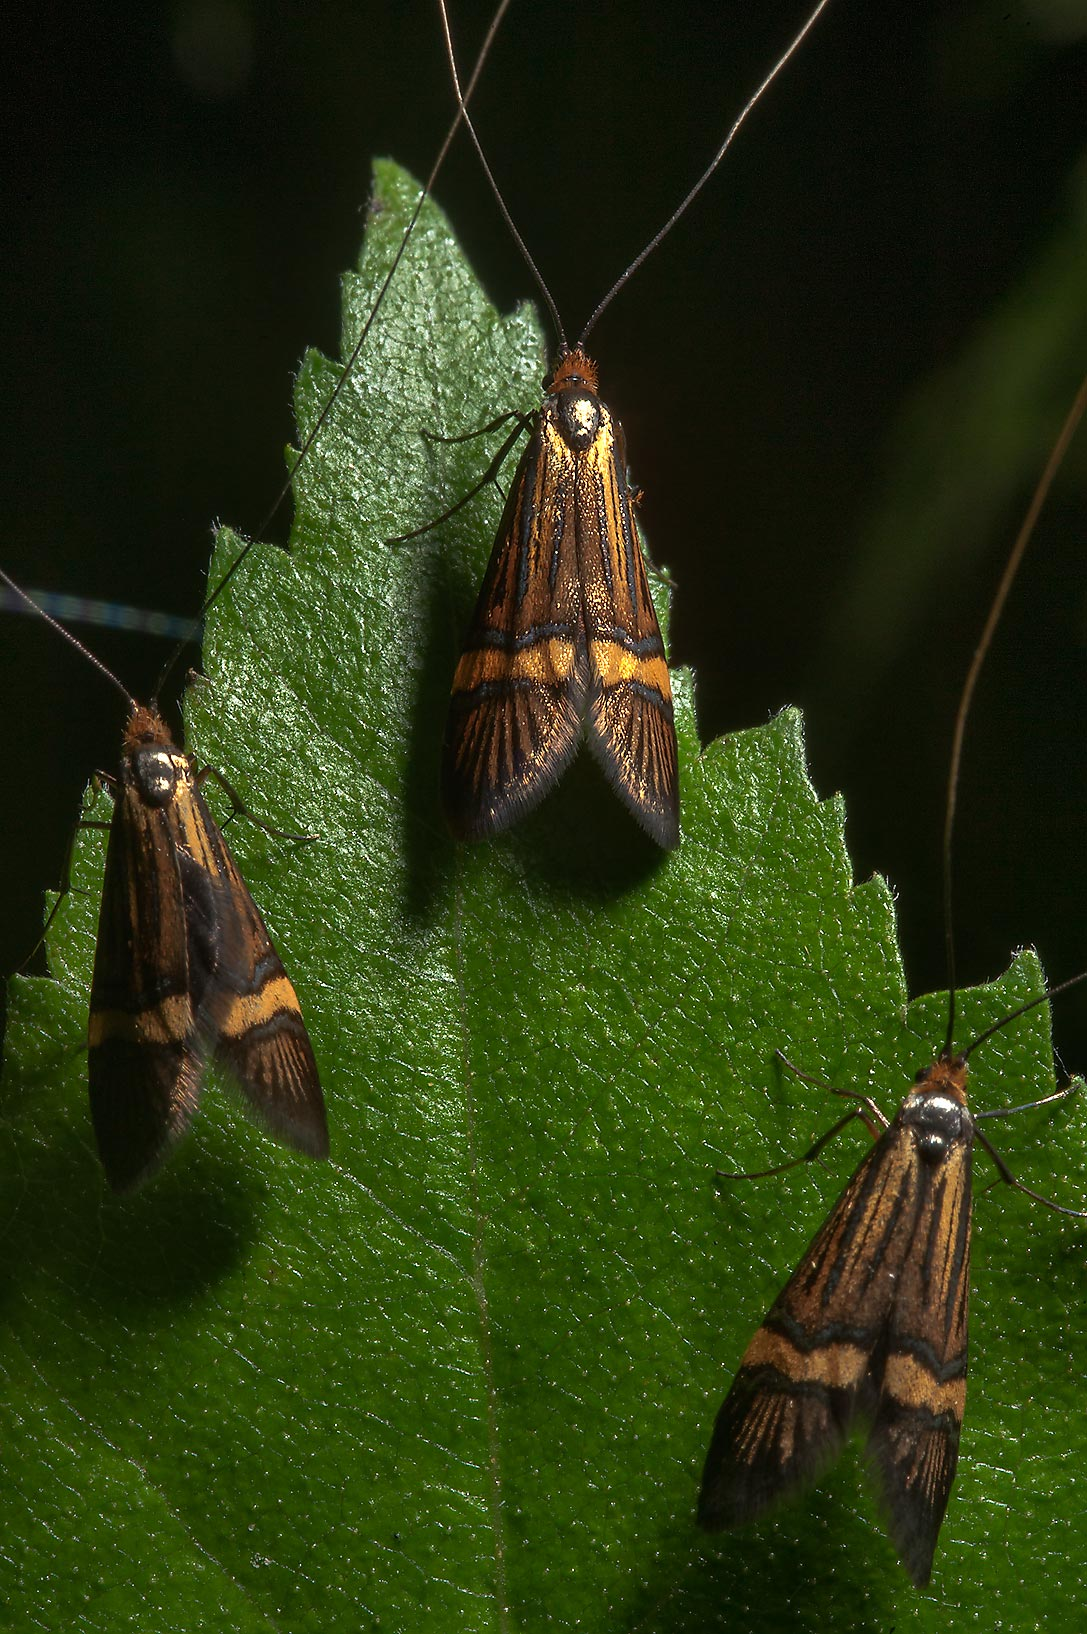 Brown moths on a leaf near Angliyskaya Alley in...a suburb of St.Petersburg, Russia